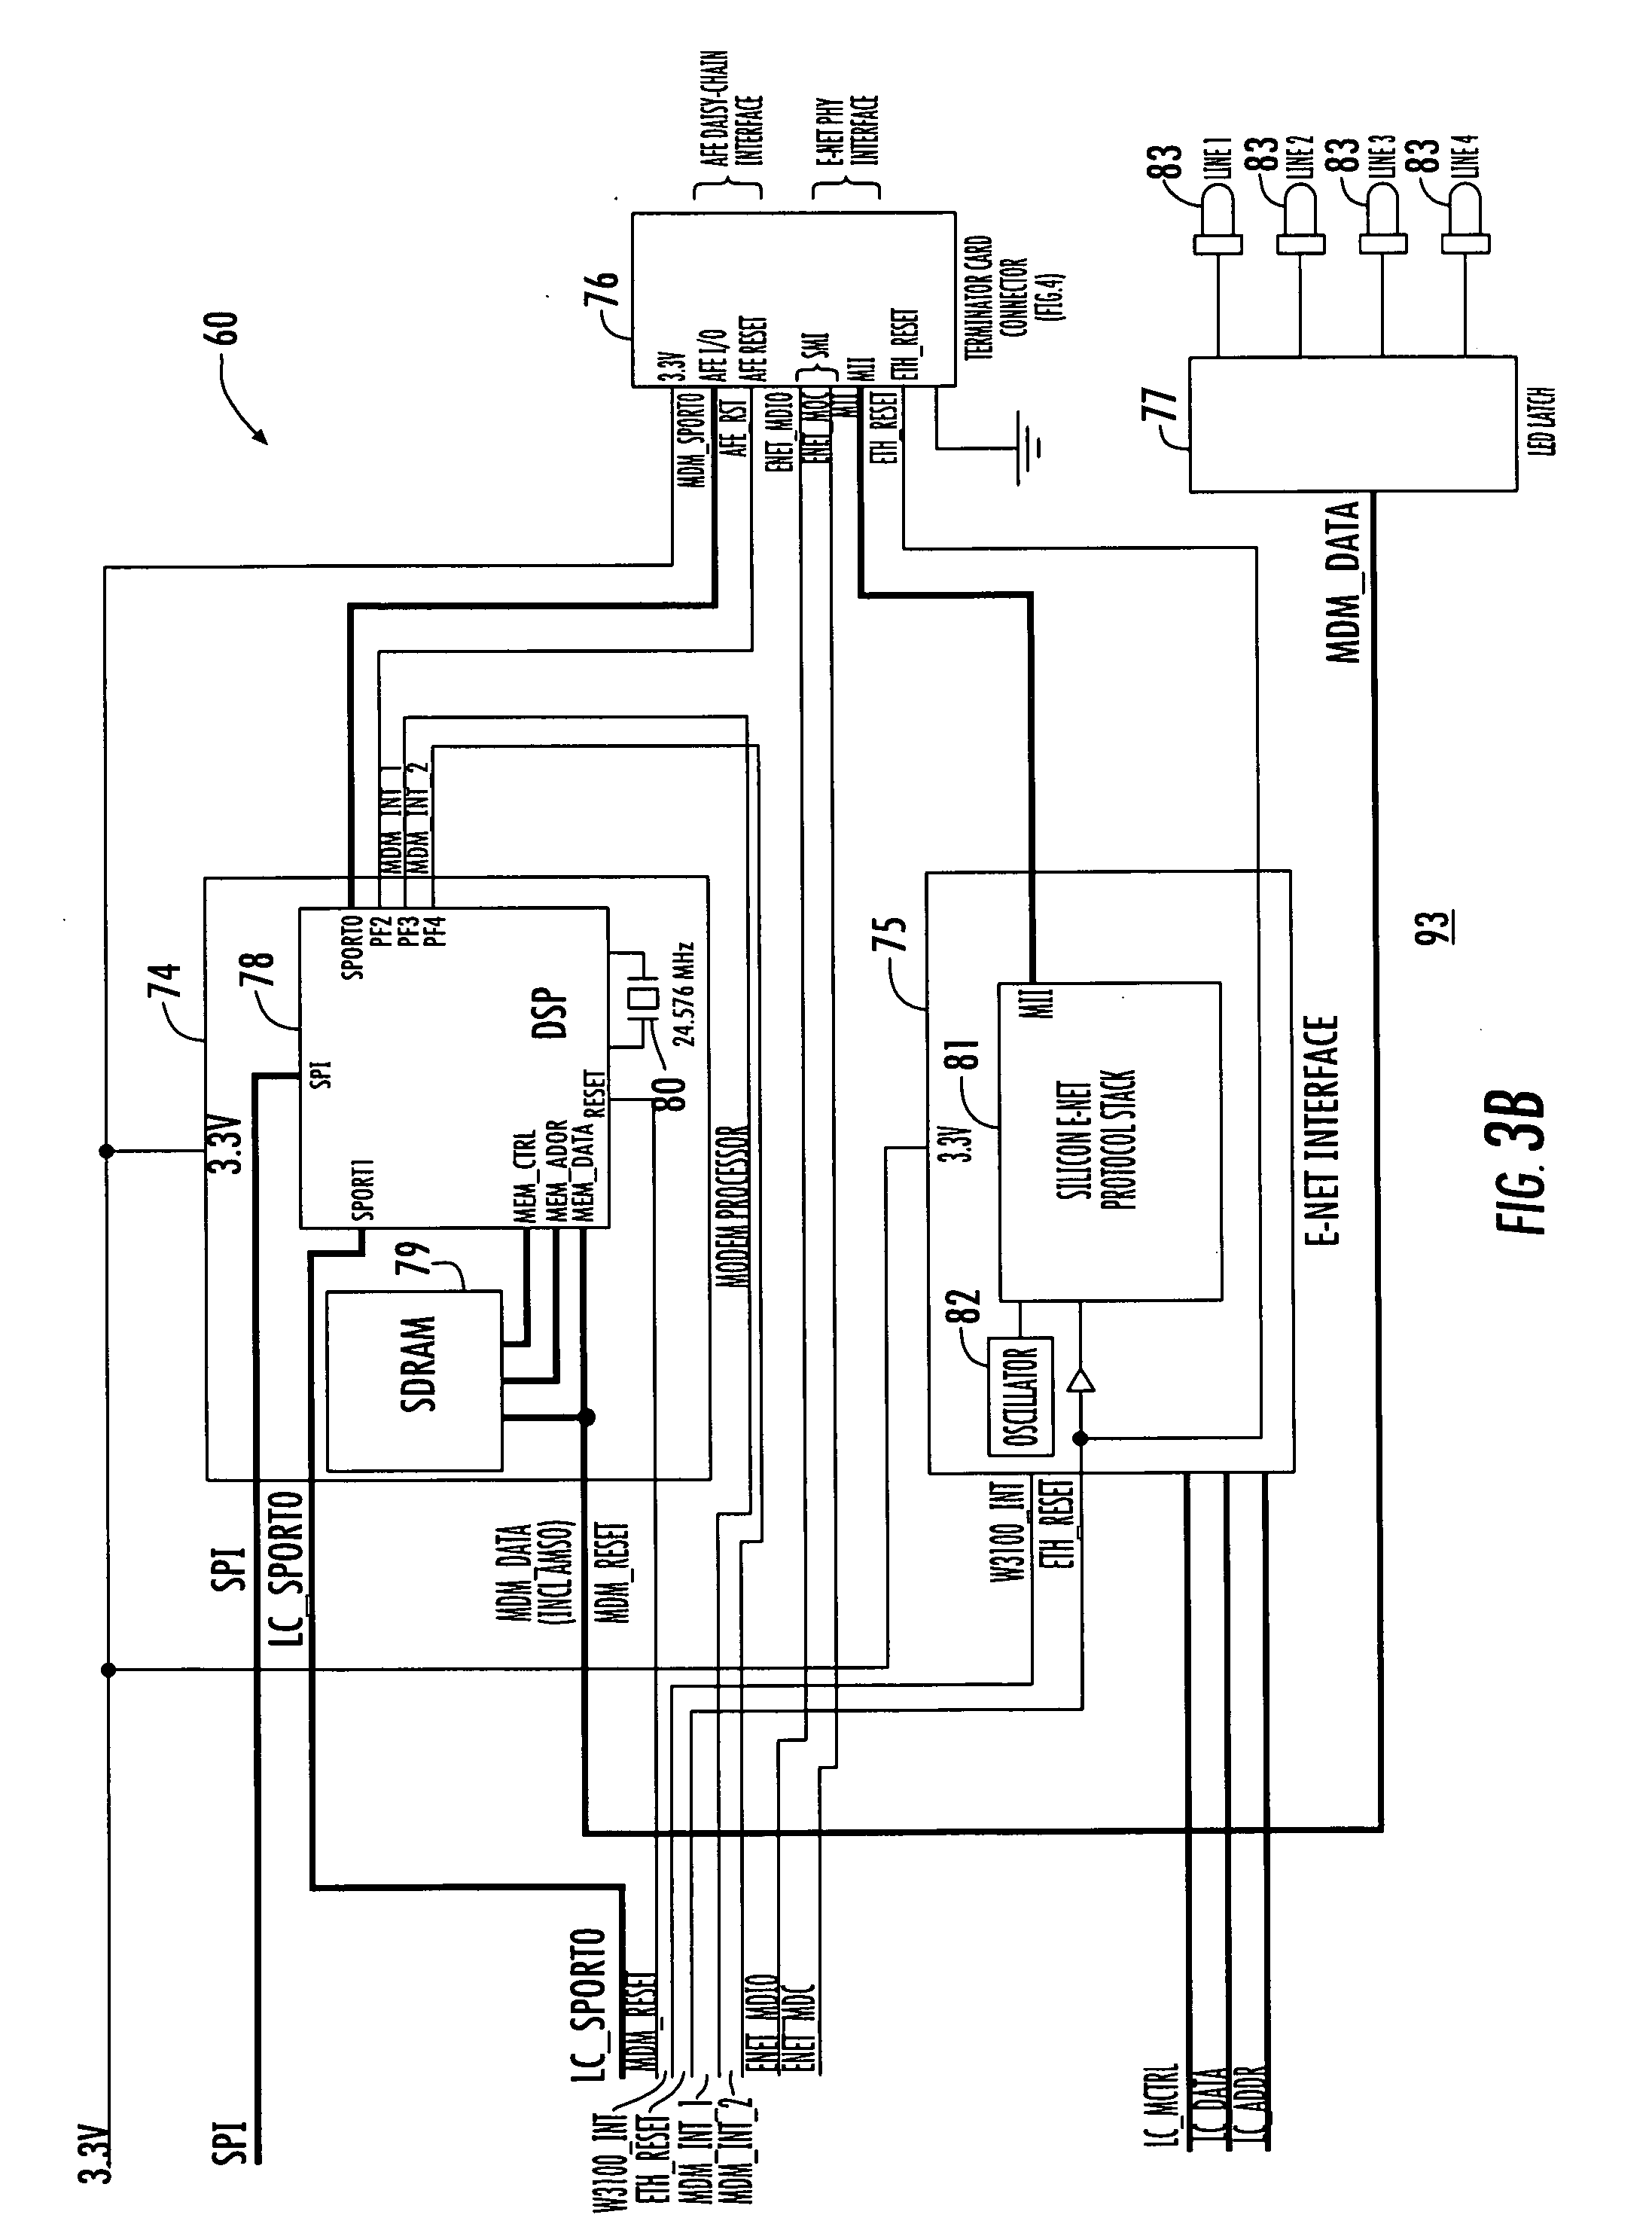 US20090058630A1 20090305 D00005 patent us20090058630 system and method for monitoring security sonitrol alarm wiring diagram at bakdesigns.co